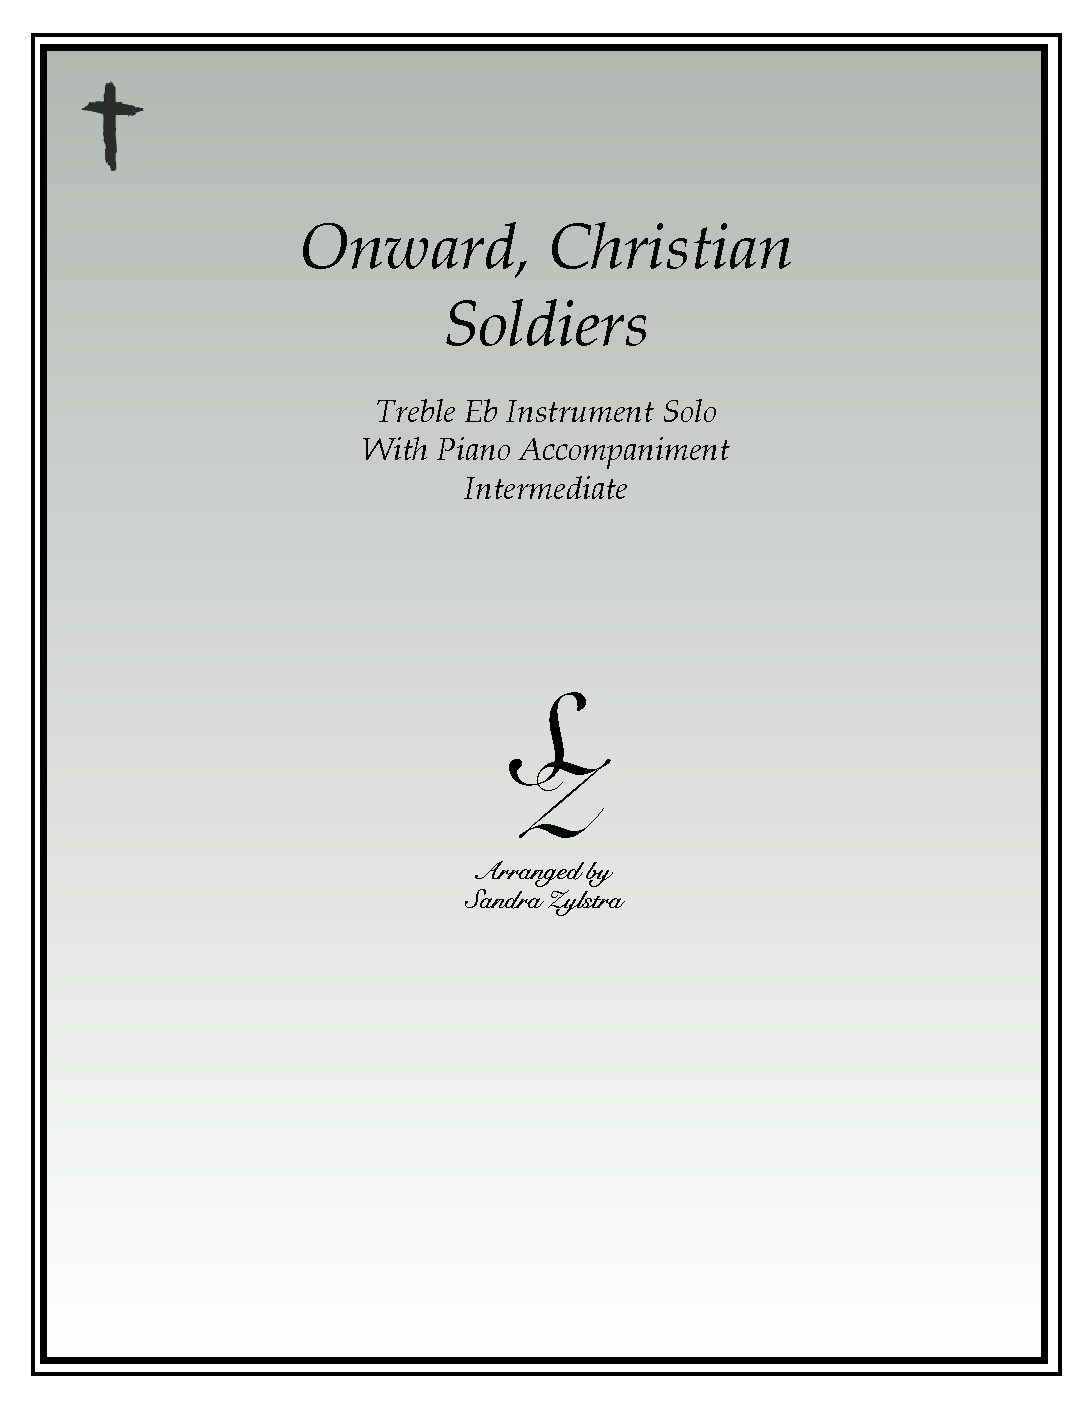 Onward, Christian Soldiers -Treble Eb Instrument Solo